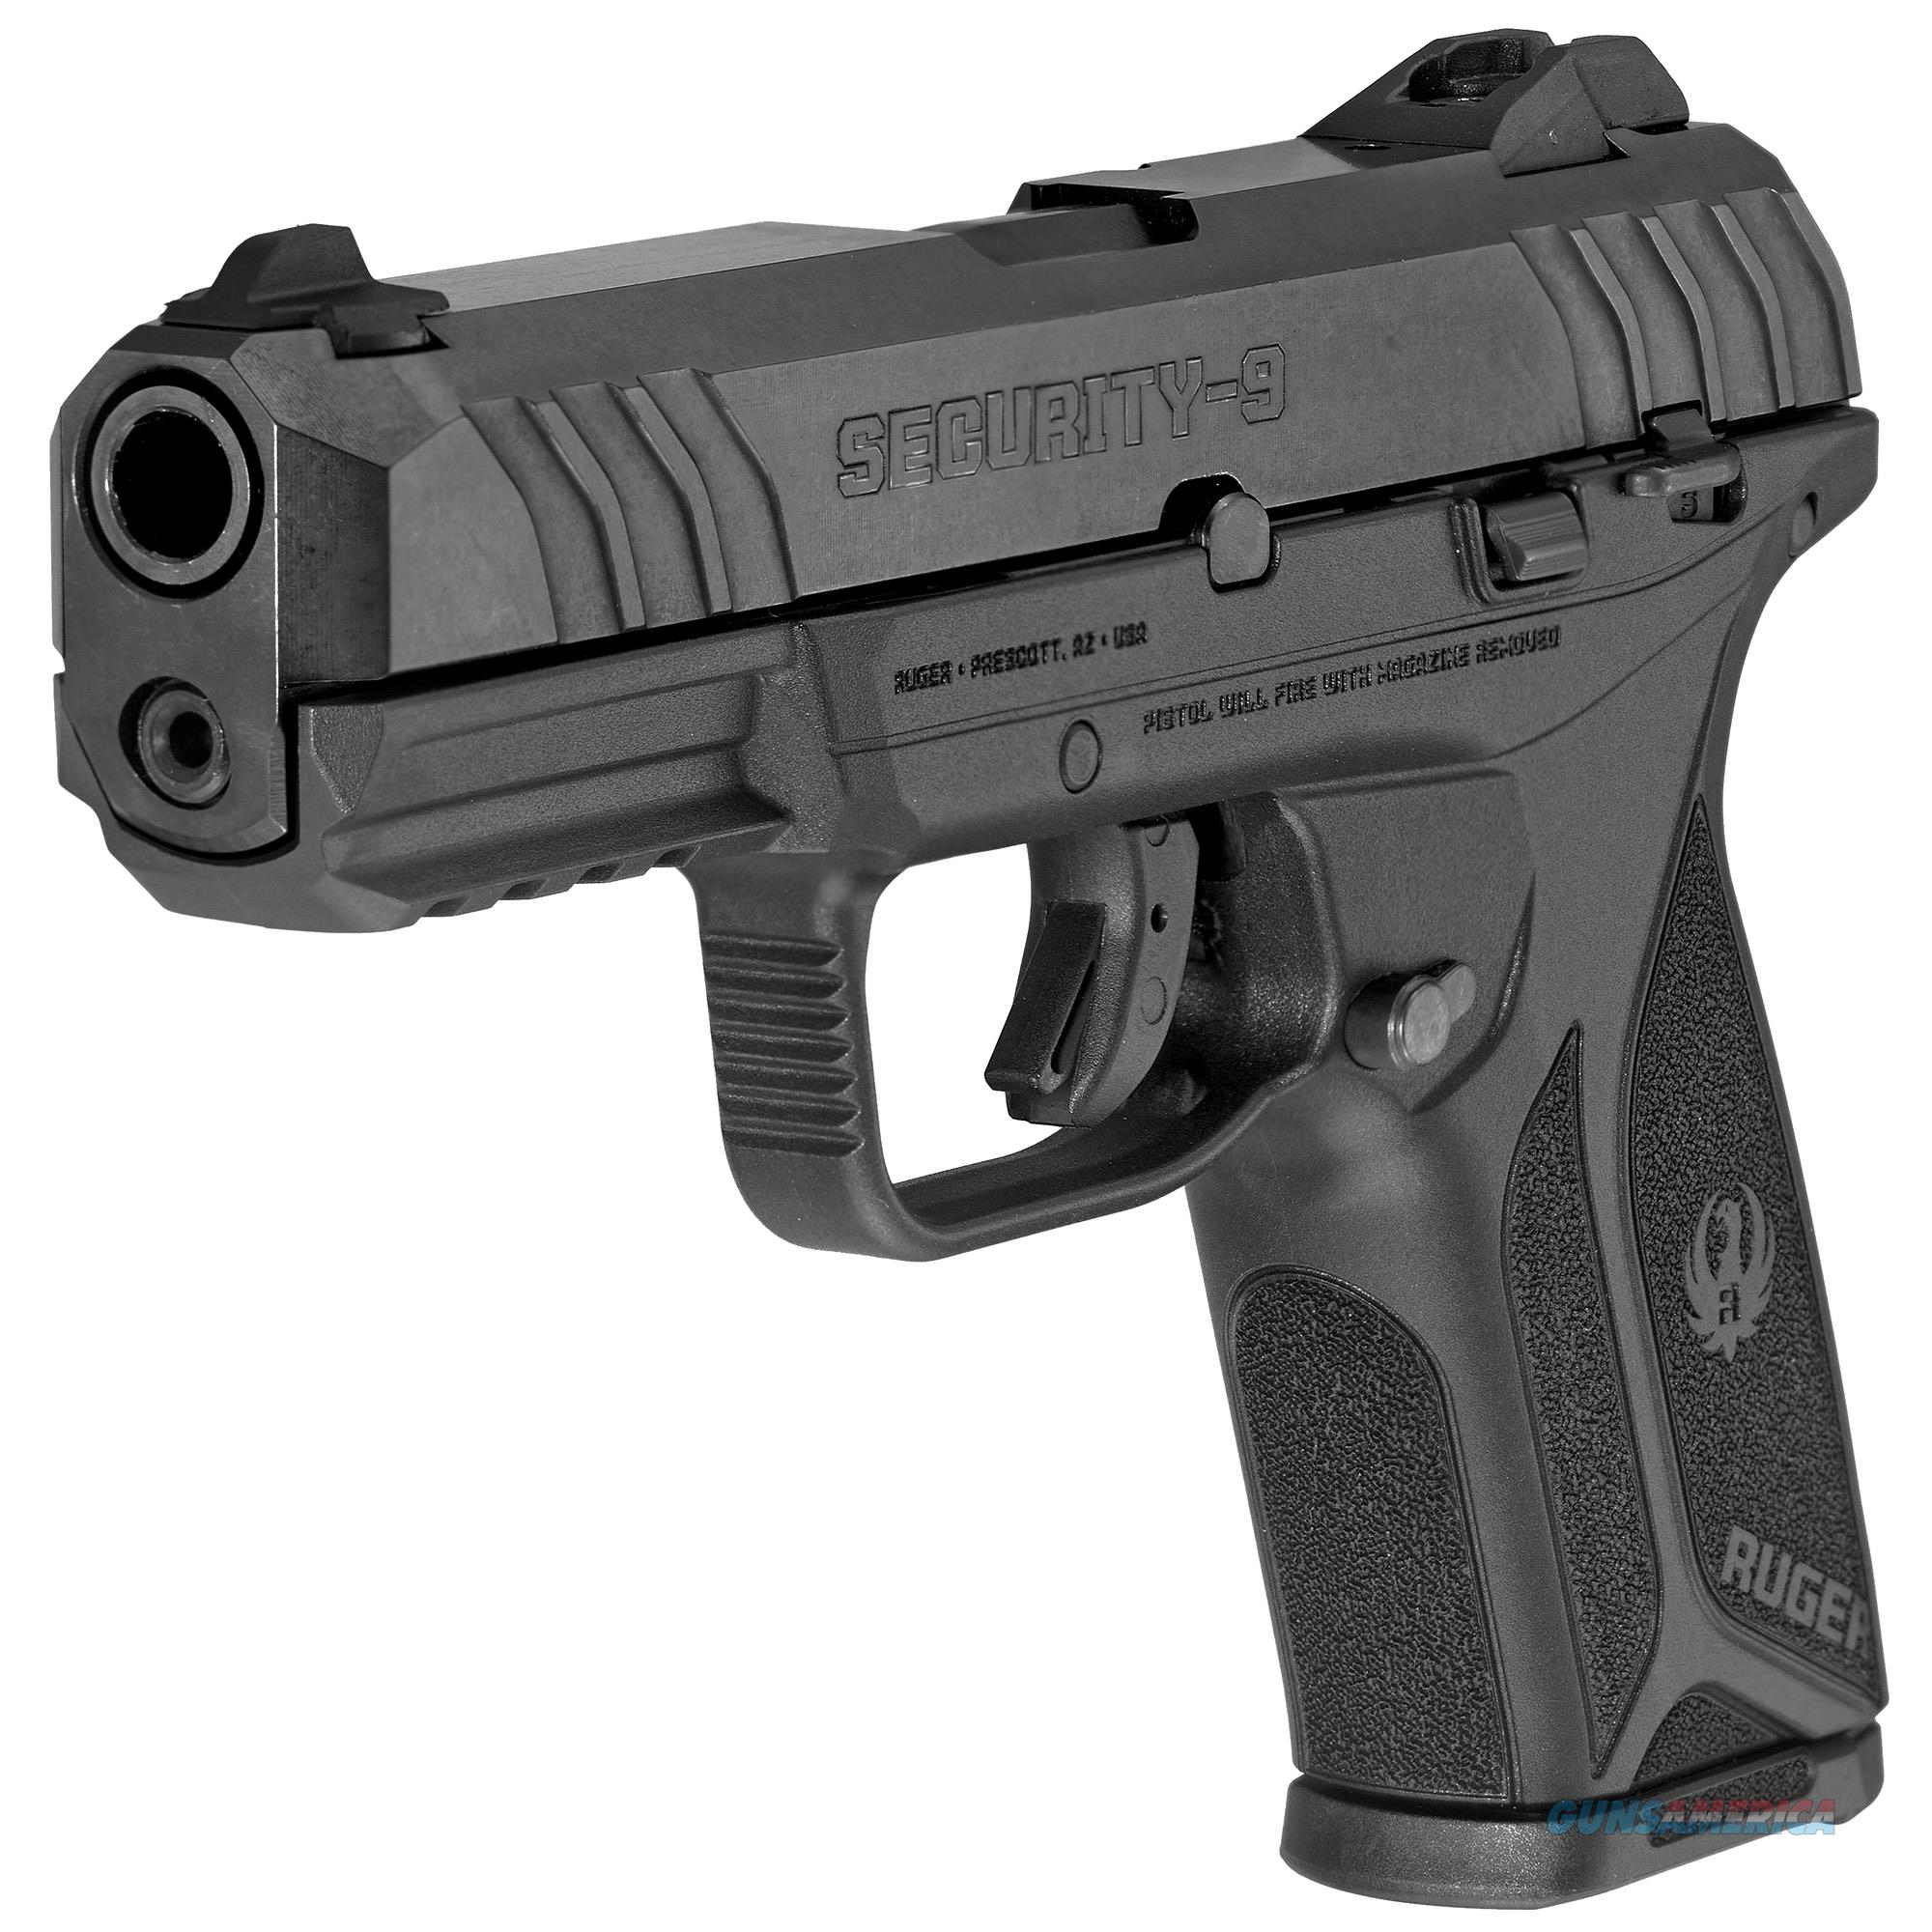 "Ruger Security 9 9mm 4"" 15+1 Black Polymer Grip - New in Box!  Guns > Pistols > Ruger Semi-Auto Pistols > Security 9"